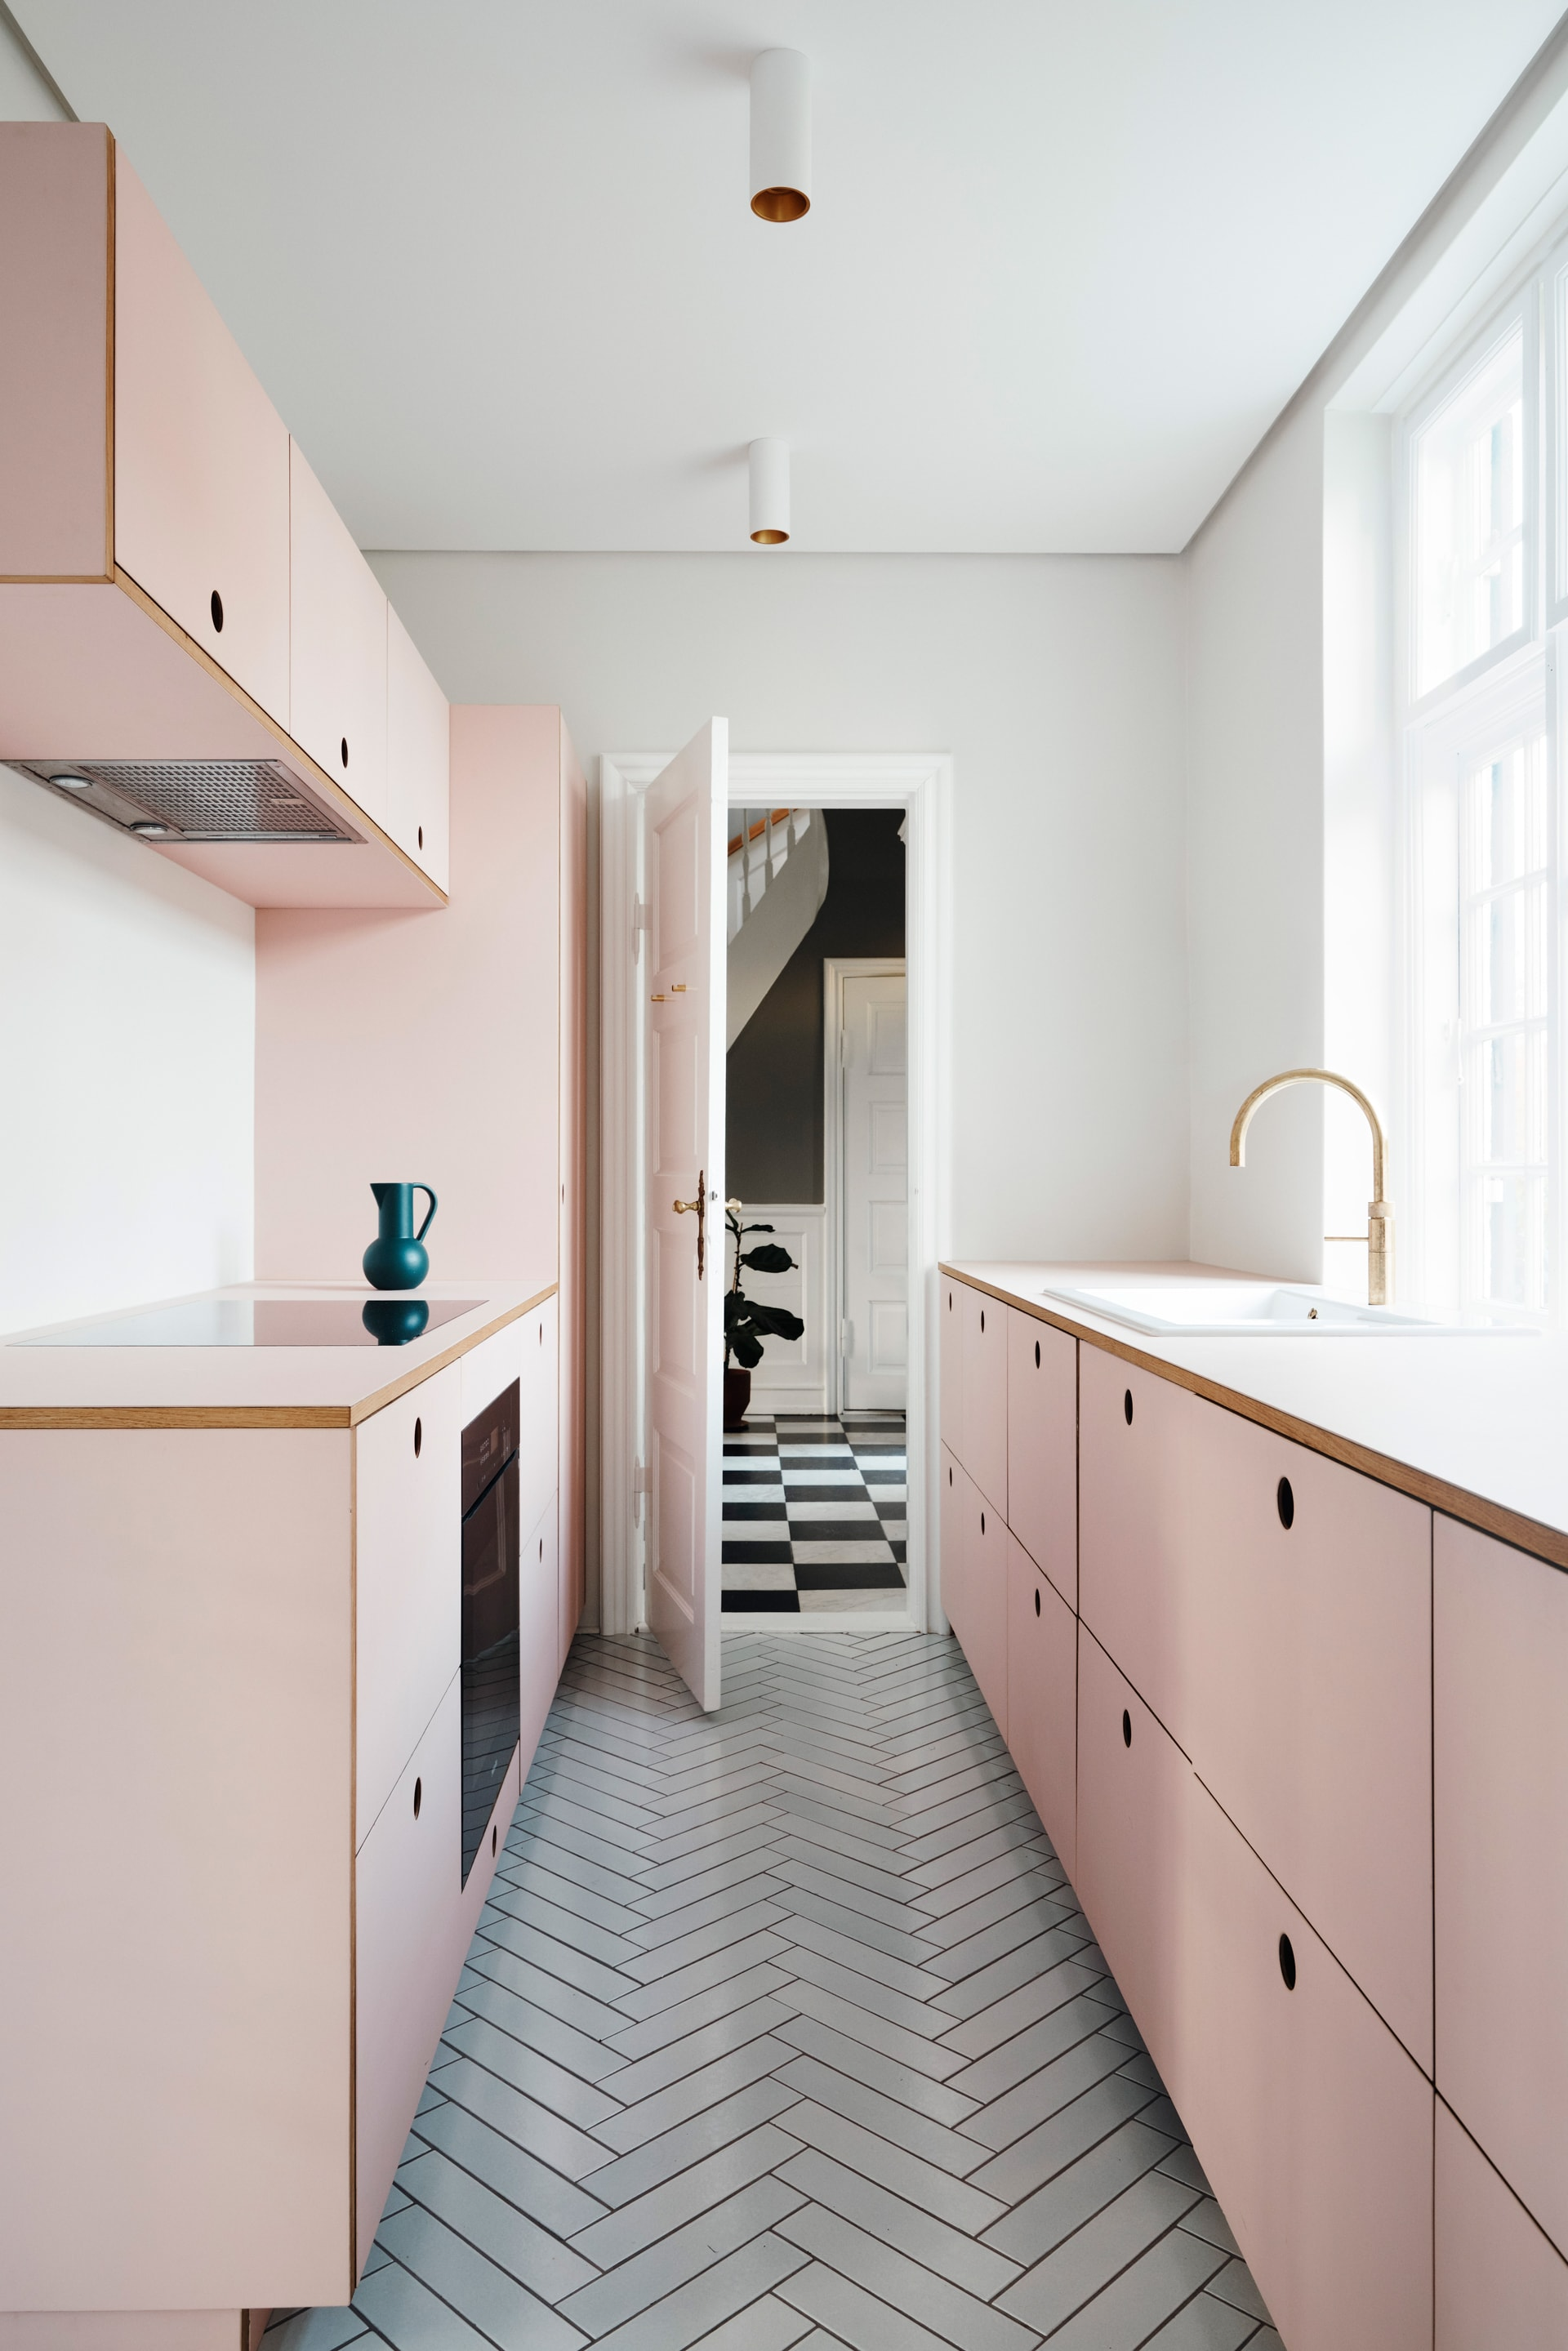 Reform kitchen fronts